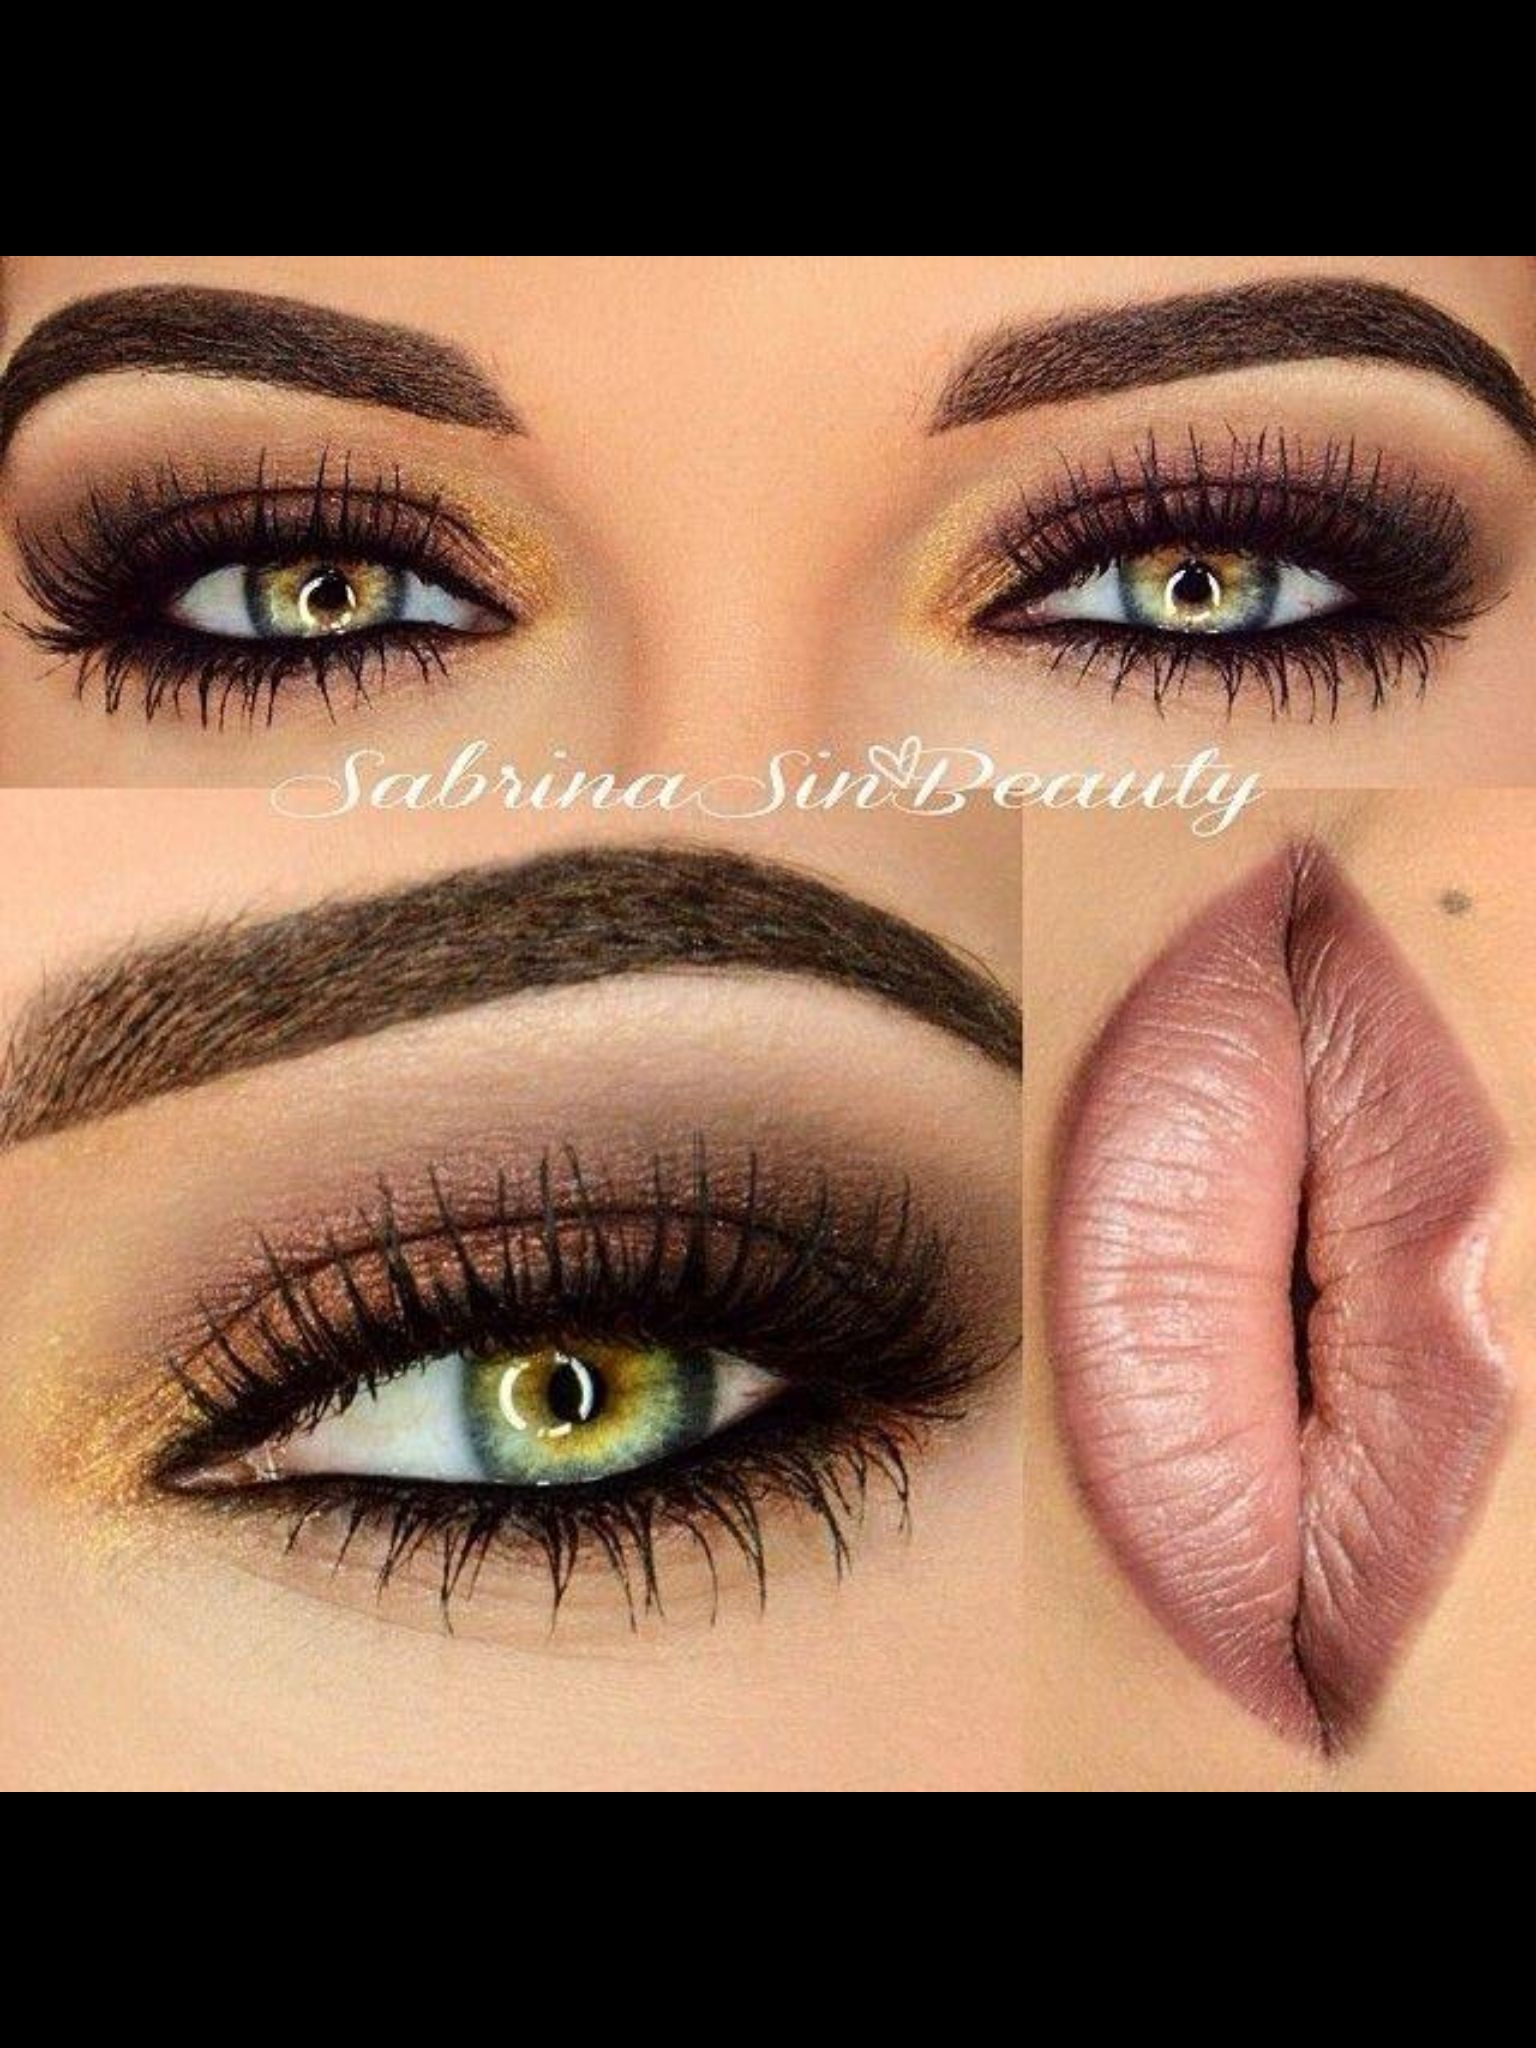 Fashion style Eye ideas makeup for green eyes for lady